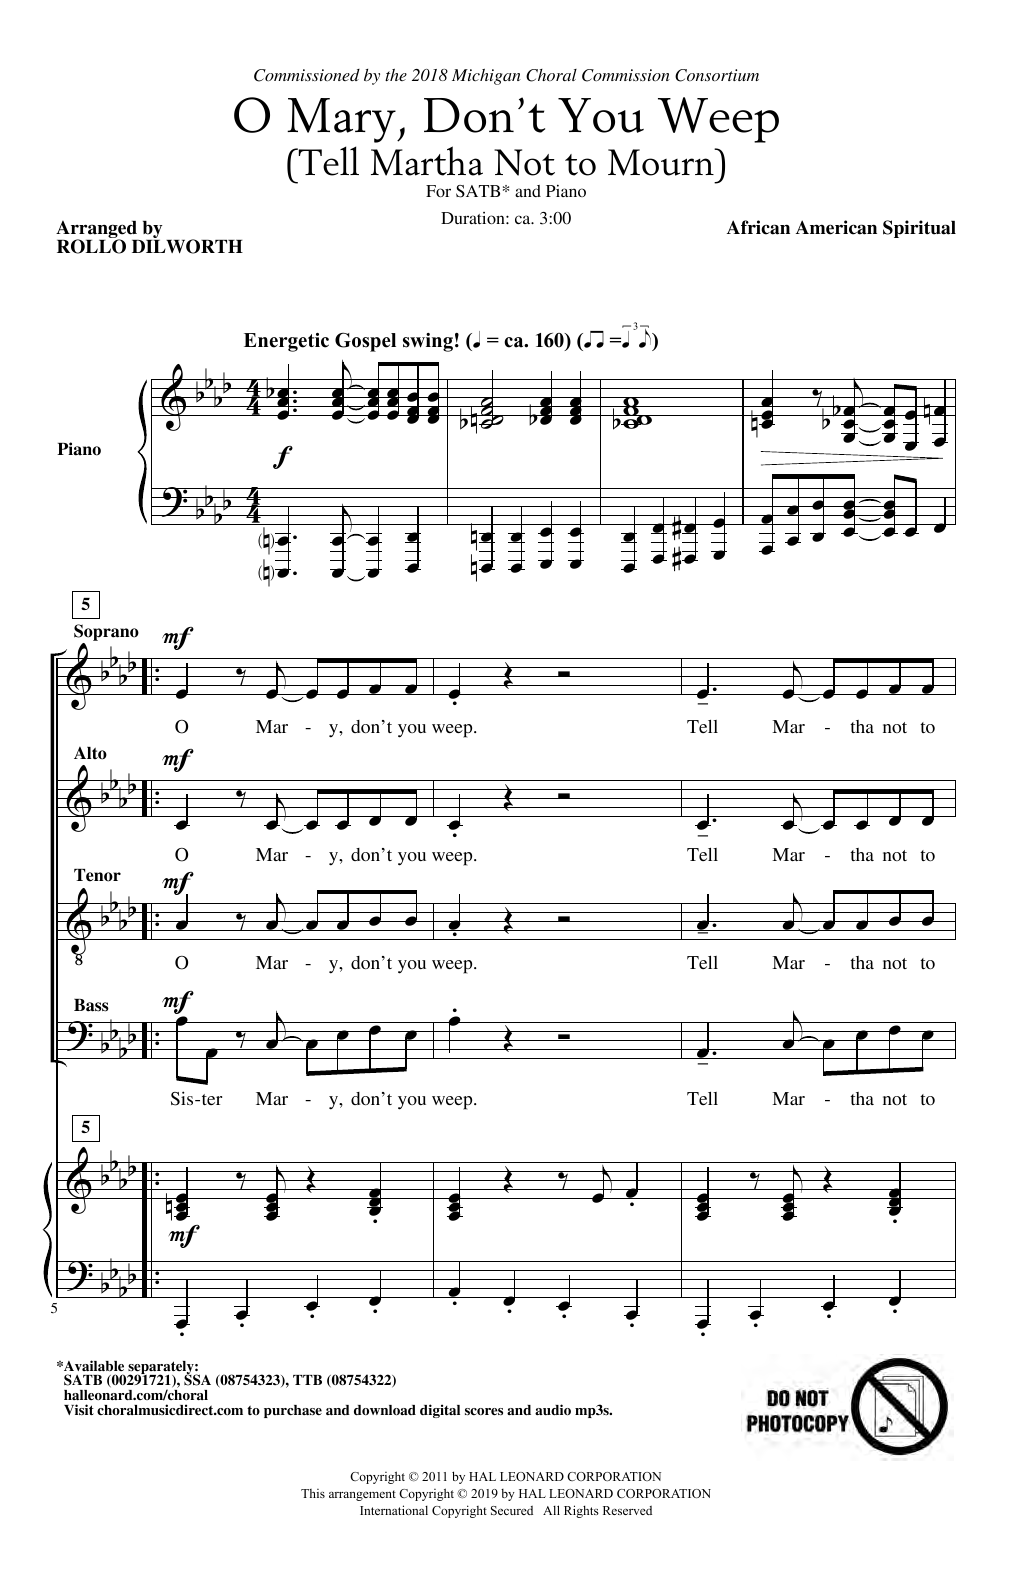 Download African-American Spiritual 'O Mary, Don't You Weep (Tell Martha Not to Mourn) (arr. Rollo Dilworth)' Digital Sheet Music Notes & Chords and start playing in minutes